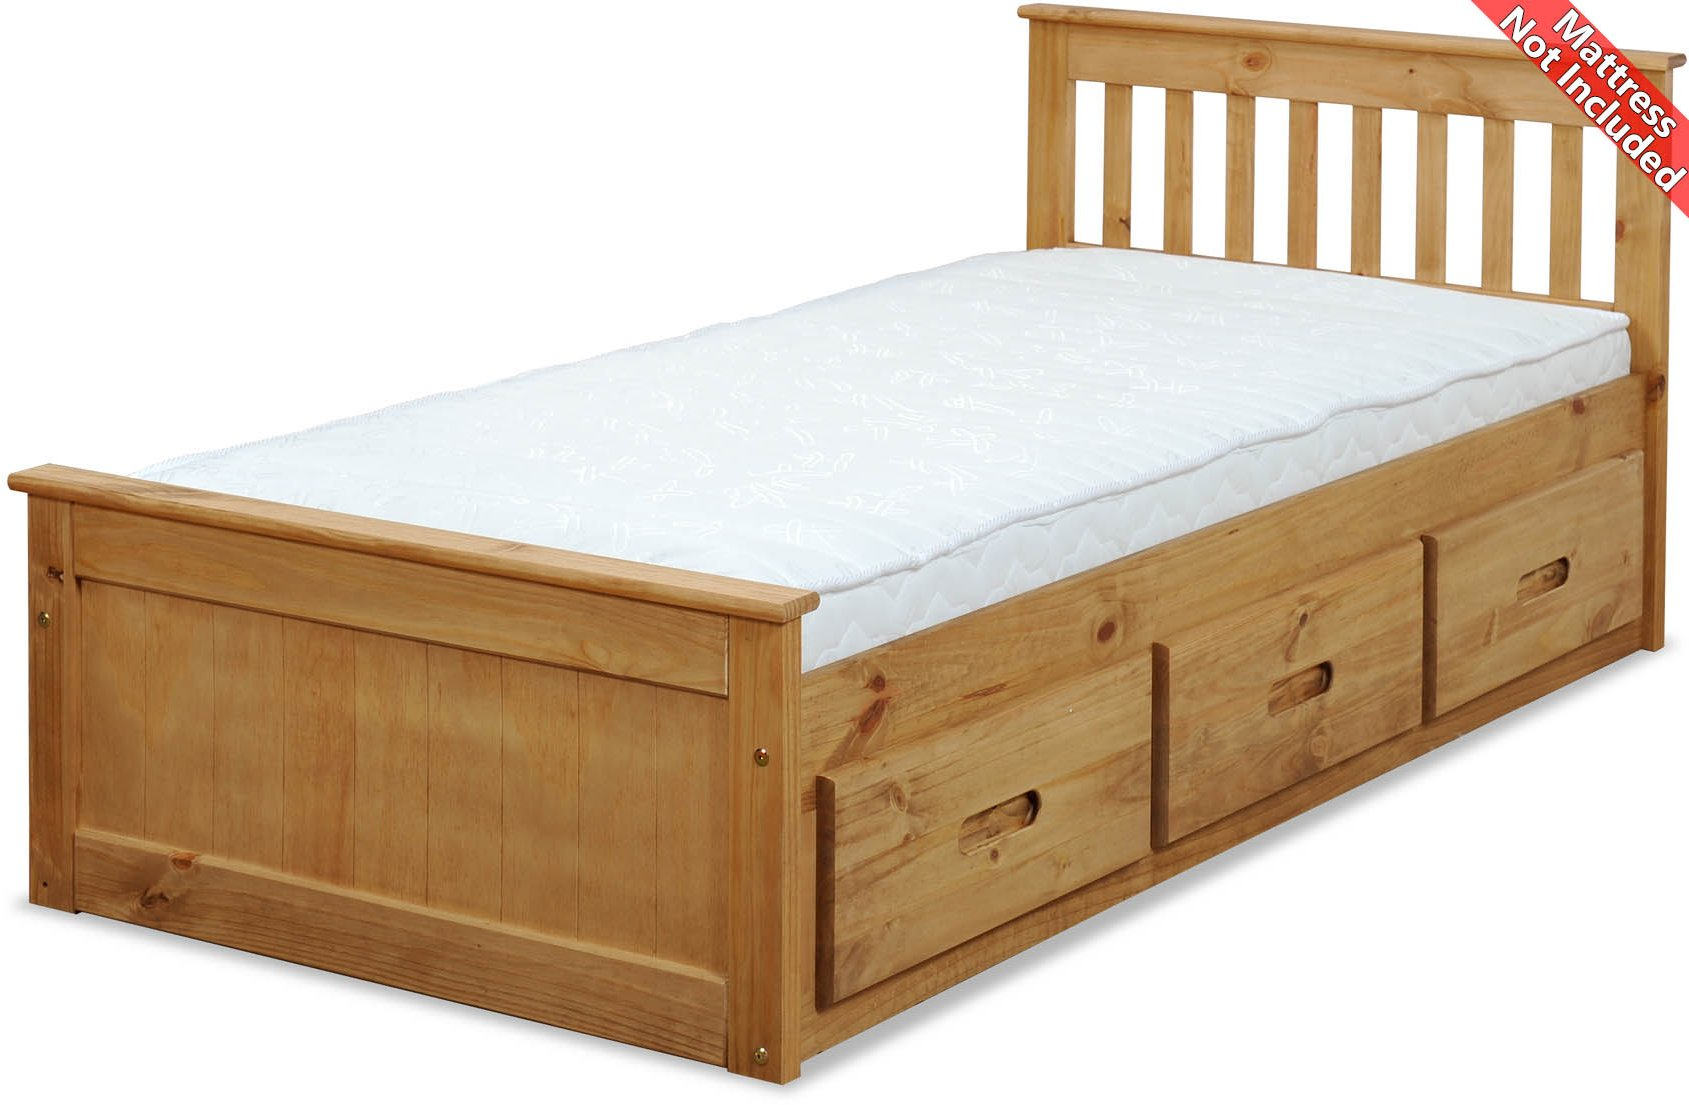 ce49bb9a4fd8 Amani Mission Small Double Bed Frame - 3 Drawers Main Image ...